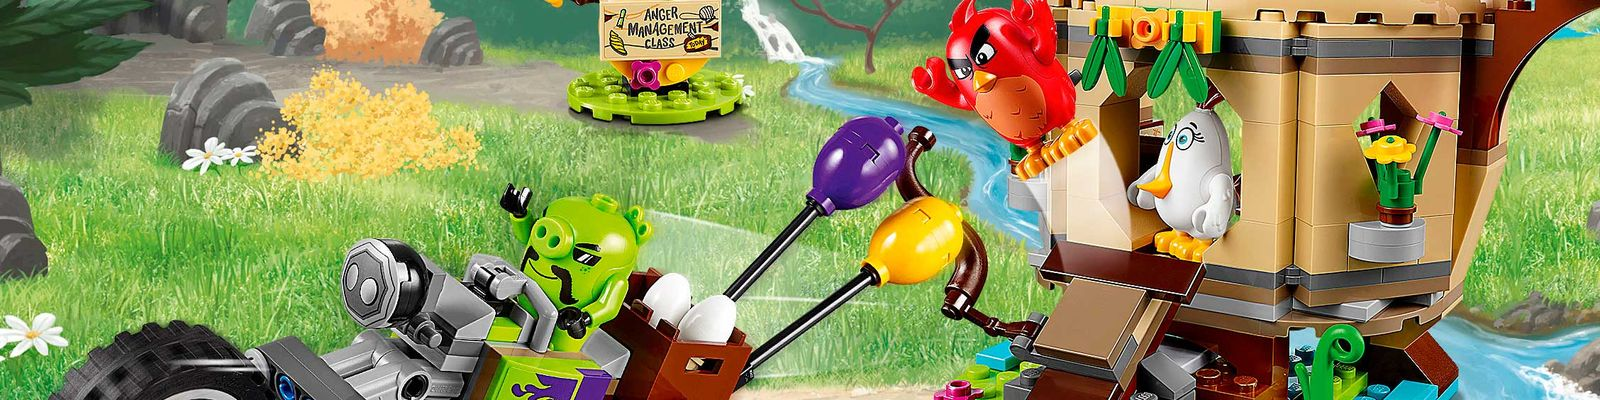 Home Lego The Angry Birds Movie Lego Us